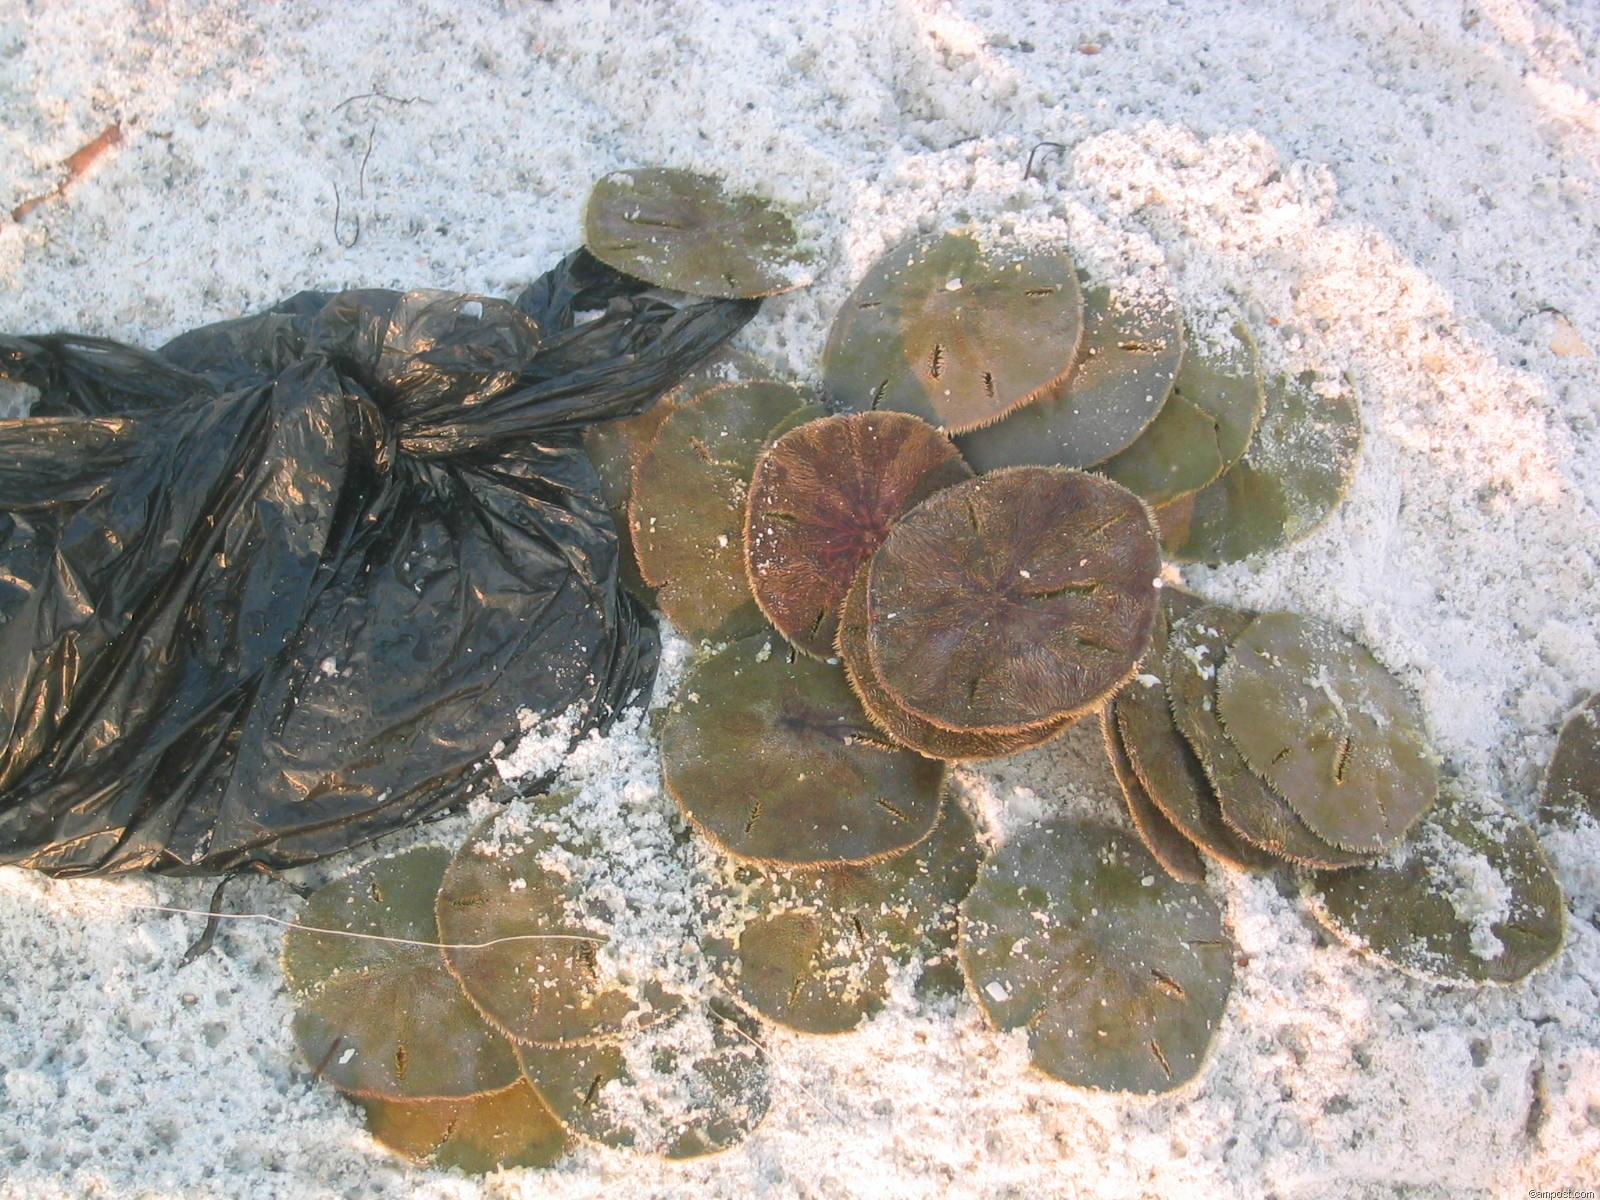 Illegally collected live Sand Dollars discarded on beach